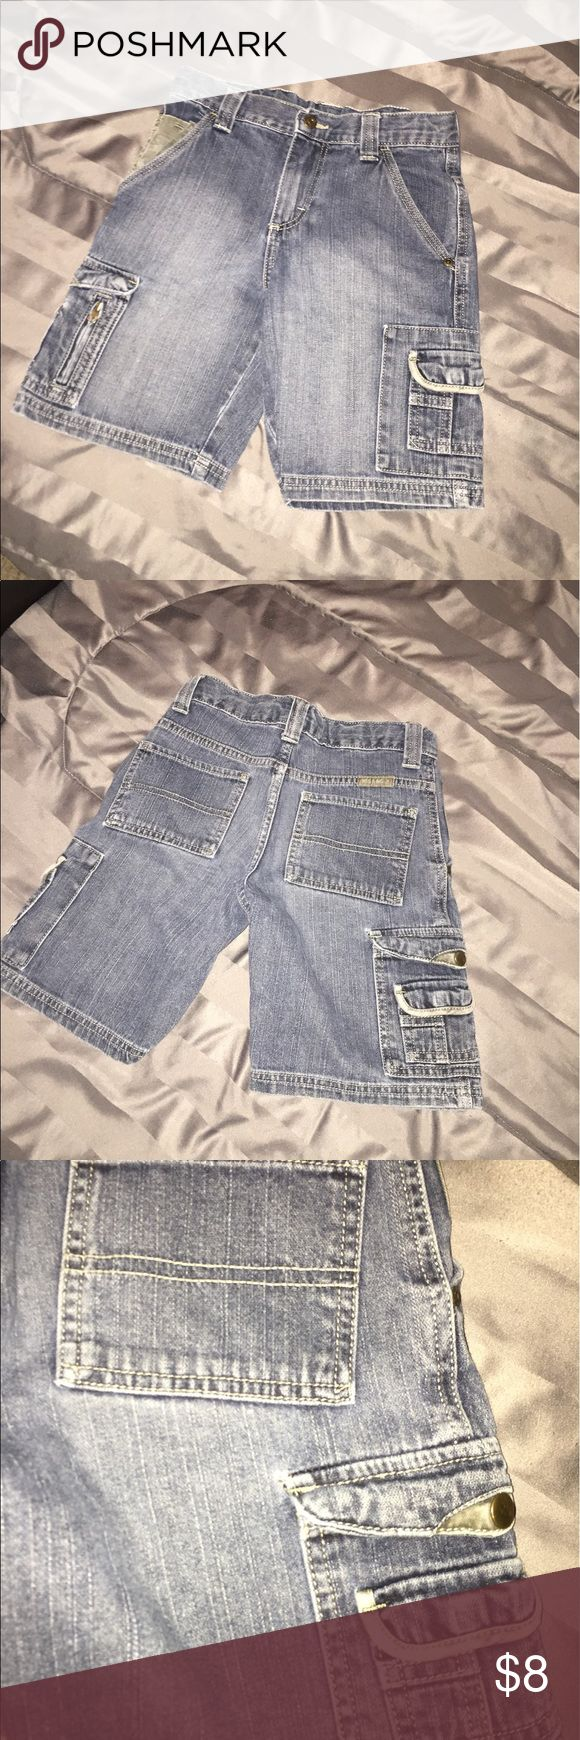 🔴4 FOR $10🔴WRANGLER CARGO JEAN SHORTS SIZE 7 CUTE BOYS WRANGLER CARGO JEANS SIZE 7.  IN GOOD CONDITION.  ONLY FLAW IS THE LITTLE HOLE BY THE POCKET.  NOT TOO SERIOUS THOUGH.  ADJUSTABLE WAIST.  💗GREAT DEALS!  EVERYTHING $10 AND UNDER IS 4 FOR $10!  EVERYTHING UNDER $20 IS 3 FOR $20.  PLEASE LET ME KNOW IF YOU HAVE ANY QUESTIONS!! 💗 Wrangler Bottoms Shorts